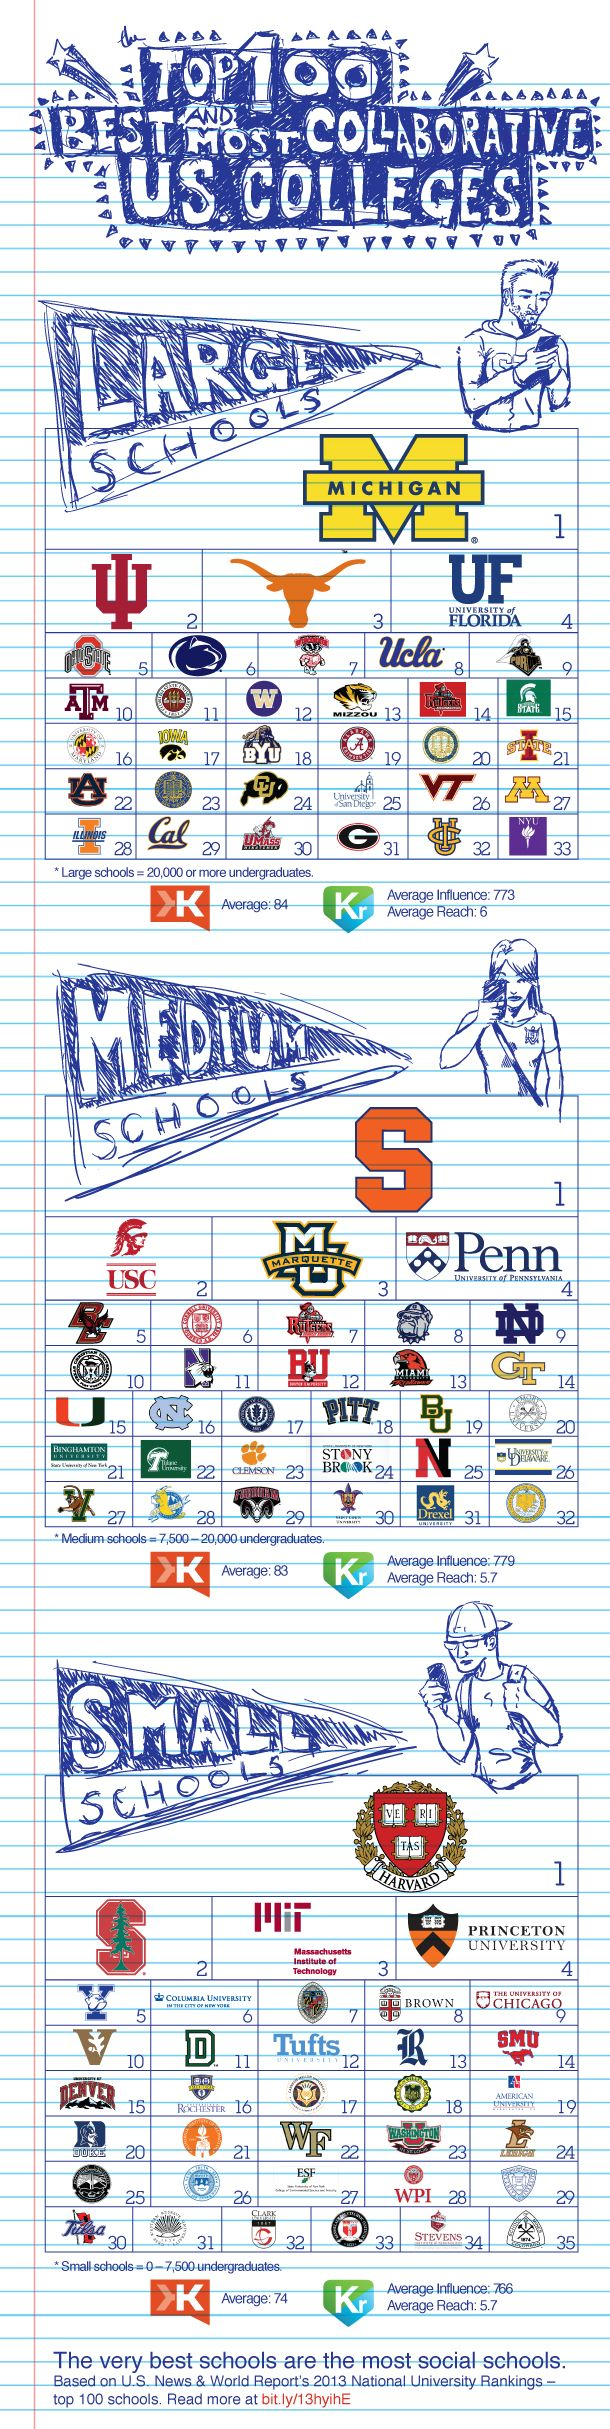 best ideas about best colleges colleges top congratulations miami university 34 on the top 100 best and most collaborative u s colleges